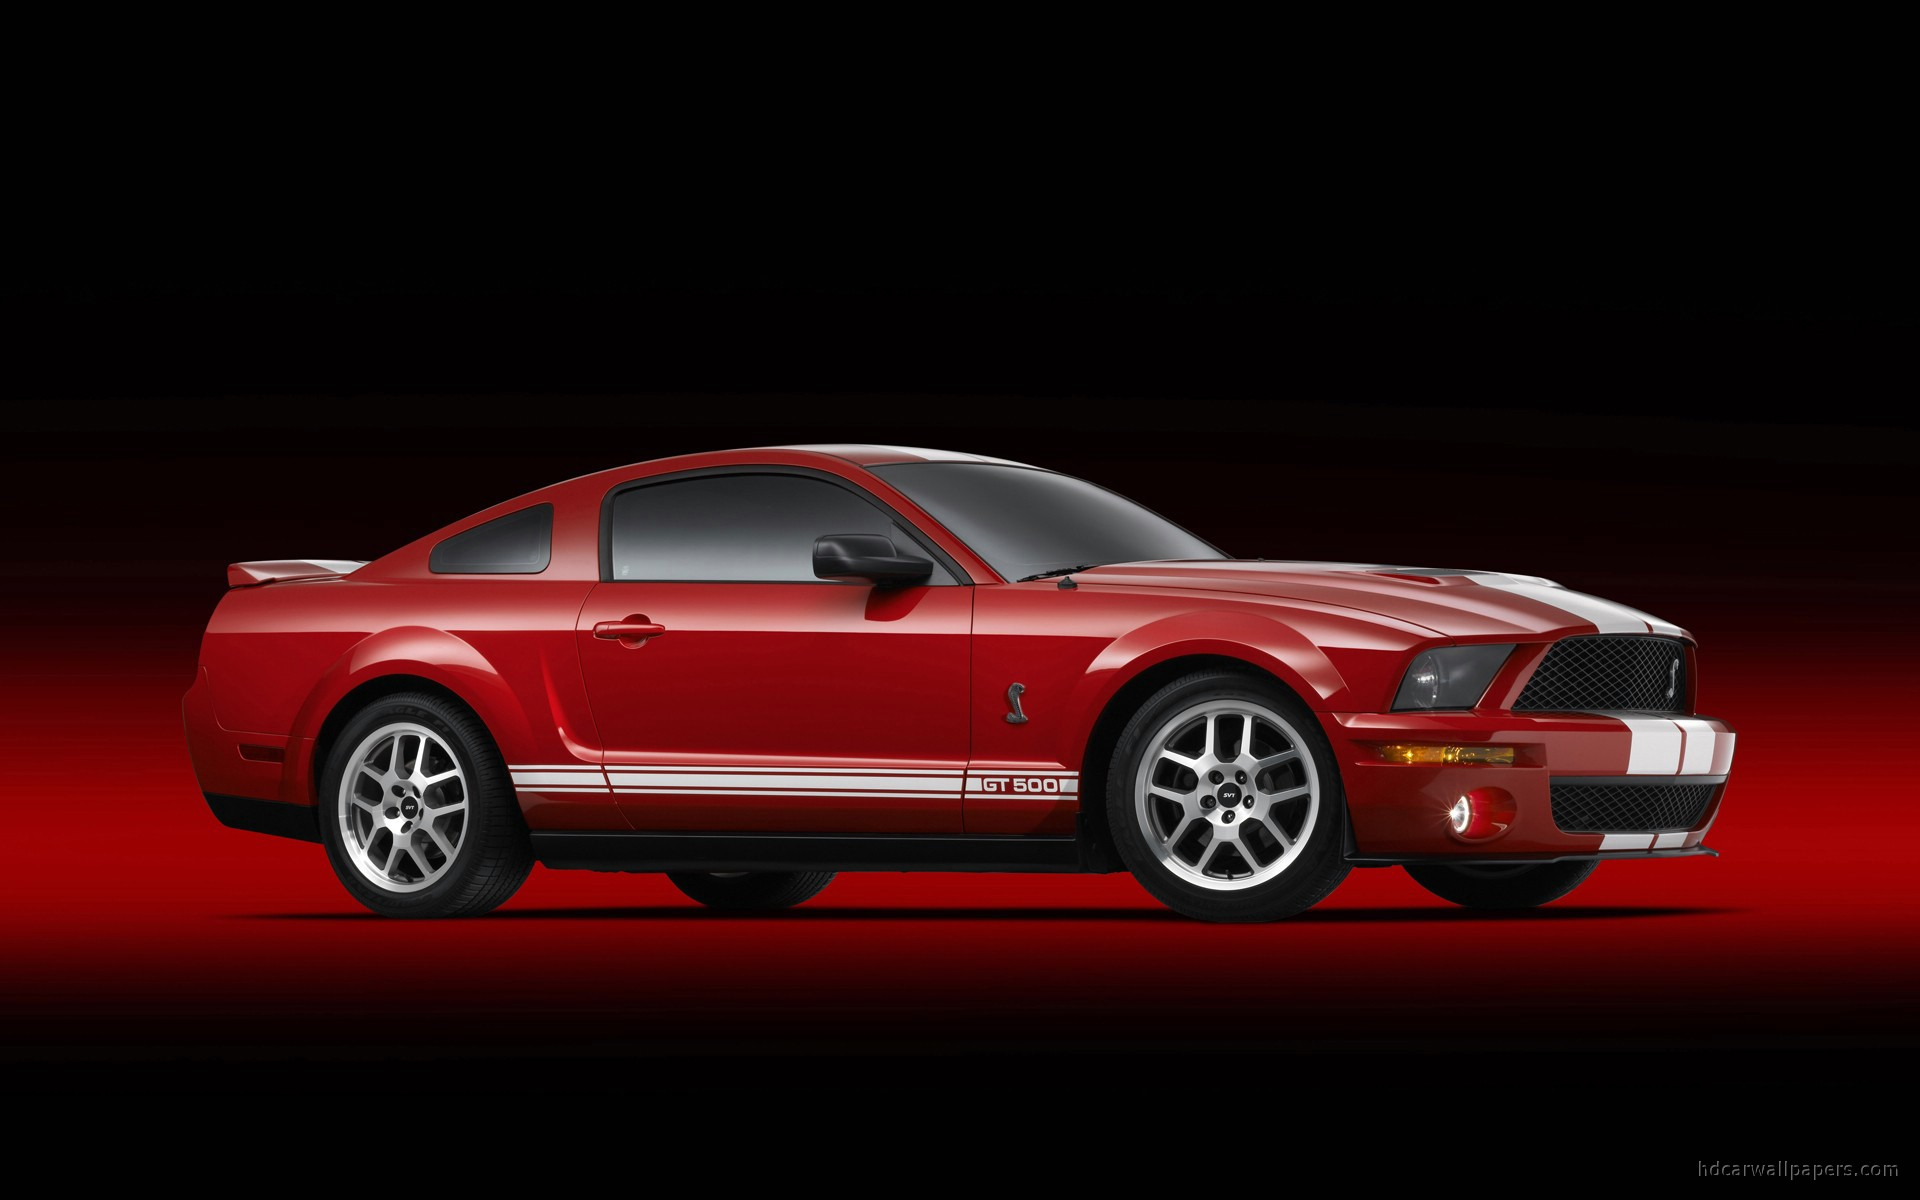 shelby cobra gt500 mustang 5 wallpaper cars hd desktop wallpapers 1920x1200